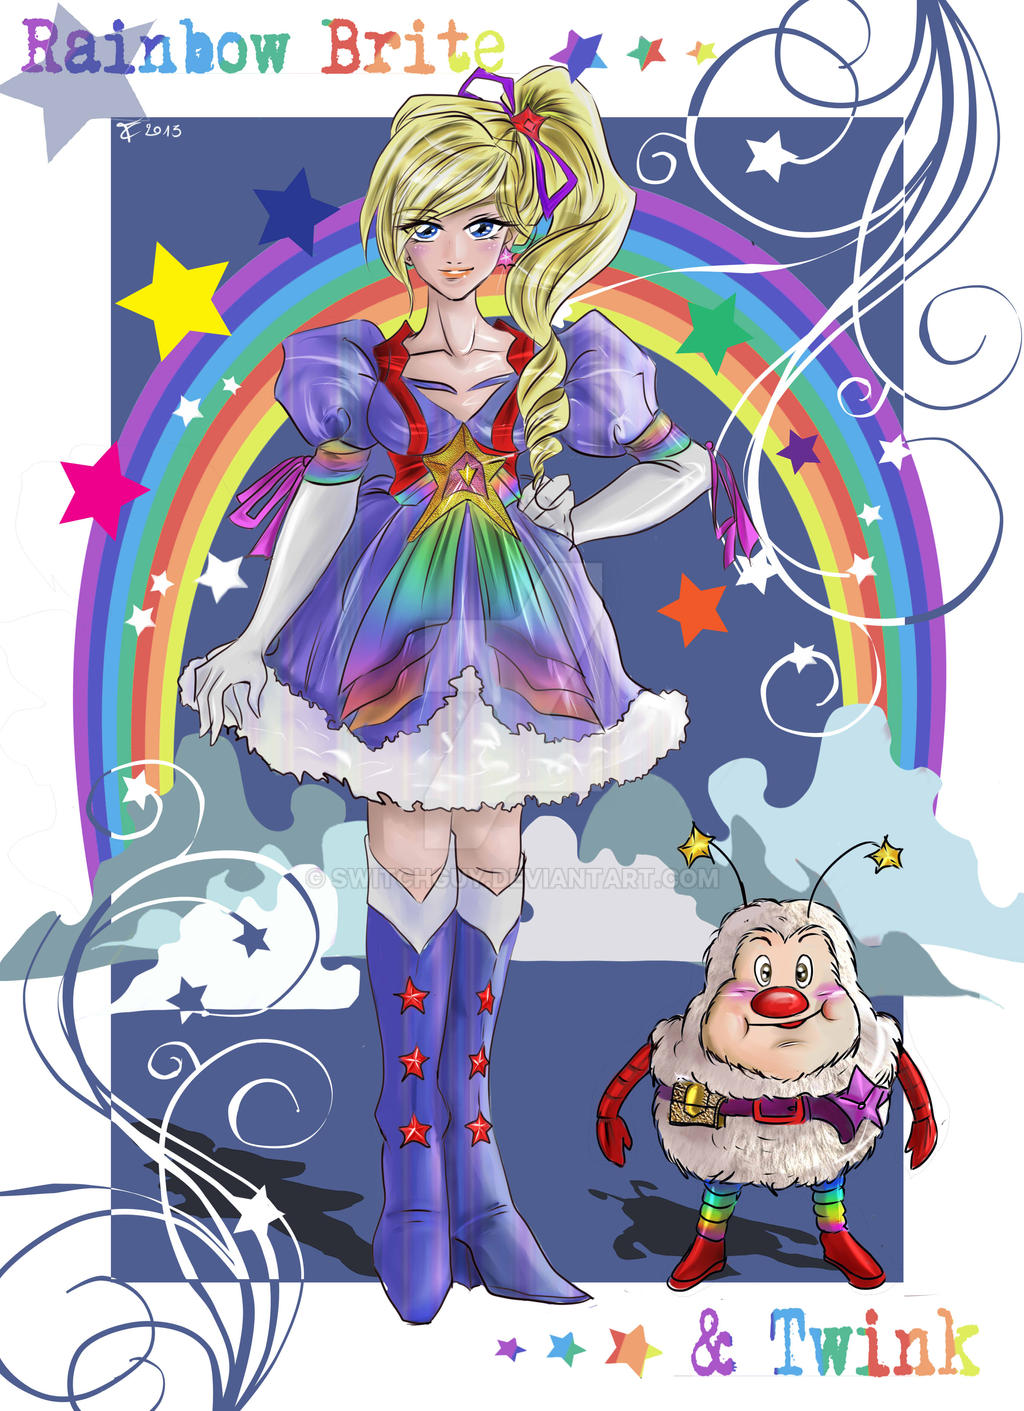 Rainbowbrite 2014 by switchguy